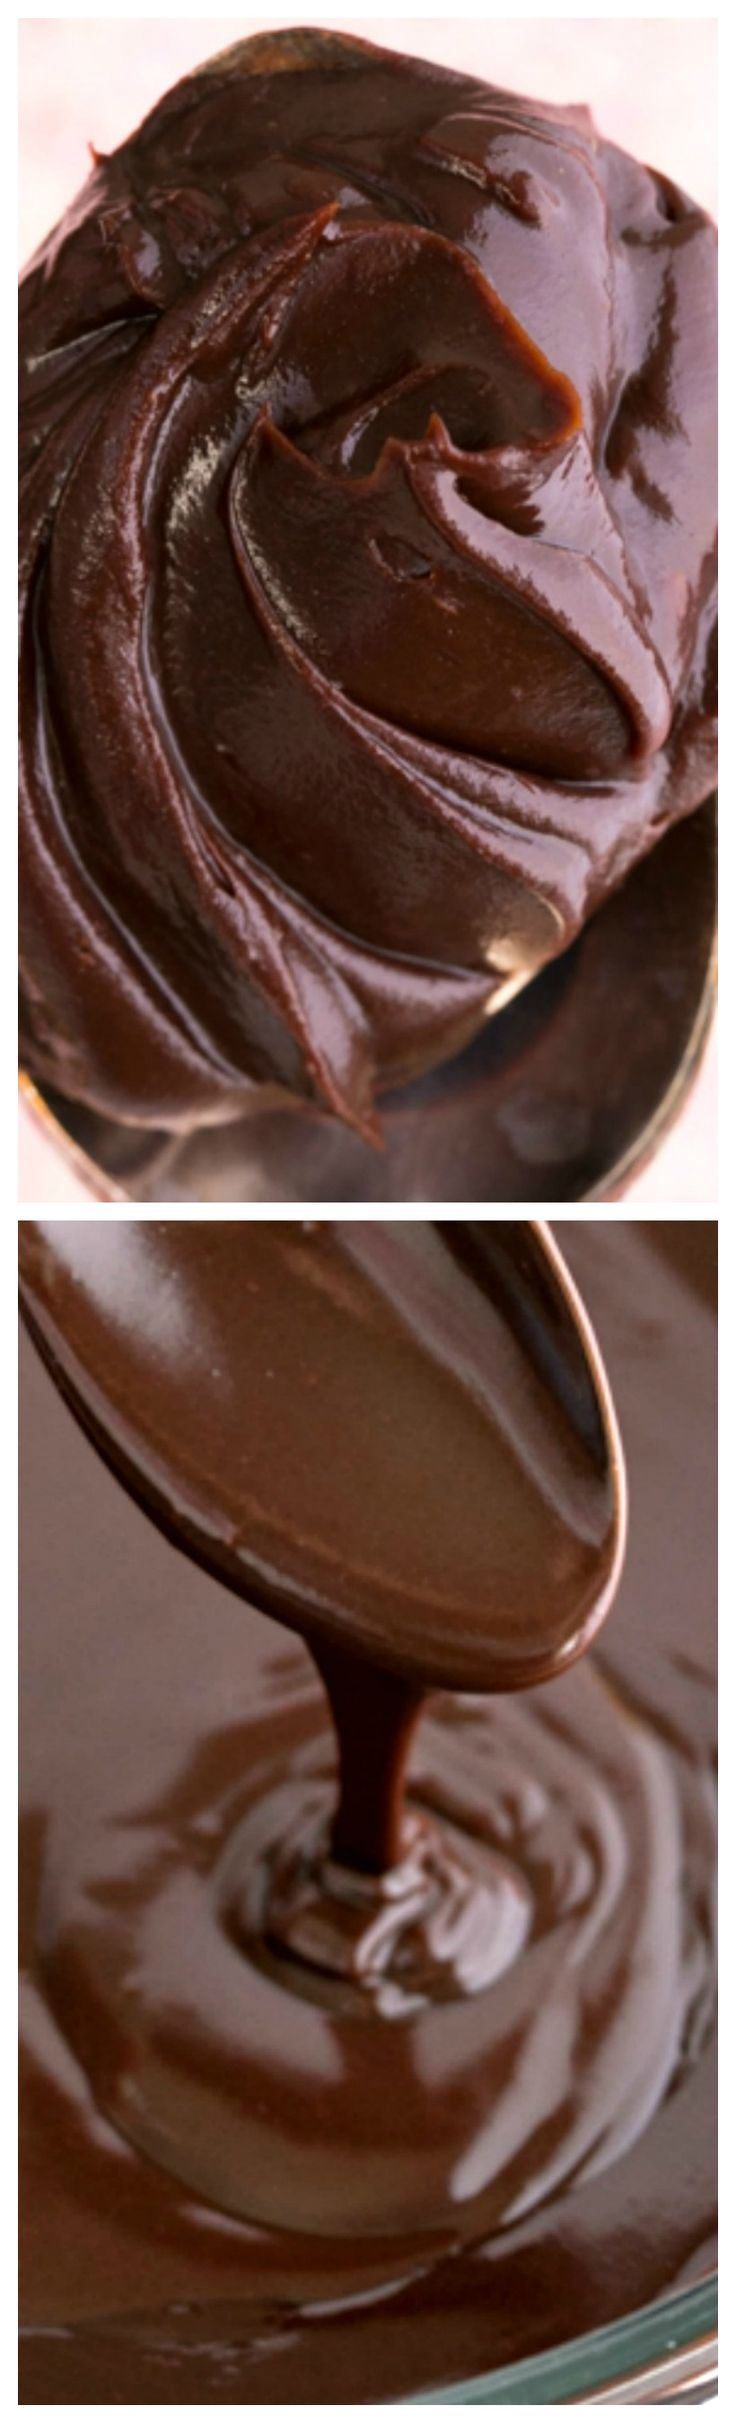 Perfect Chocolate Ganache ~ This is chocolate ganache is really easy and you only need two ingredients! Pour it over cakes or let it cool and frost your cupcakes with it!